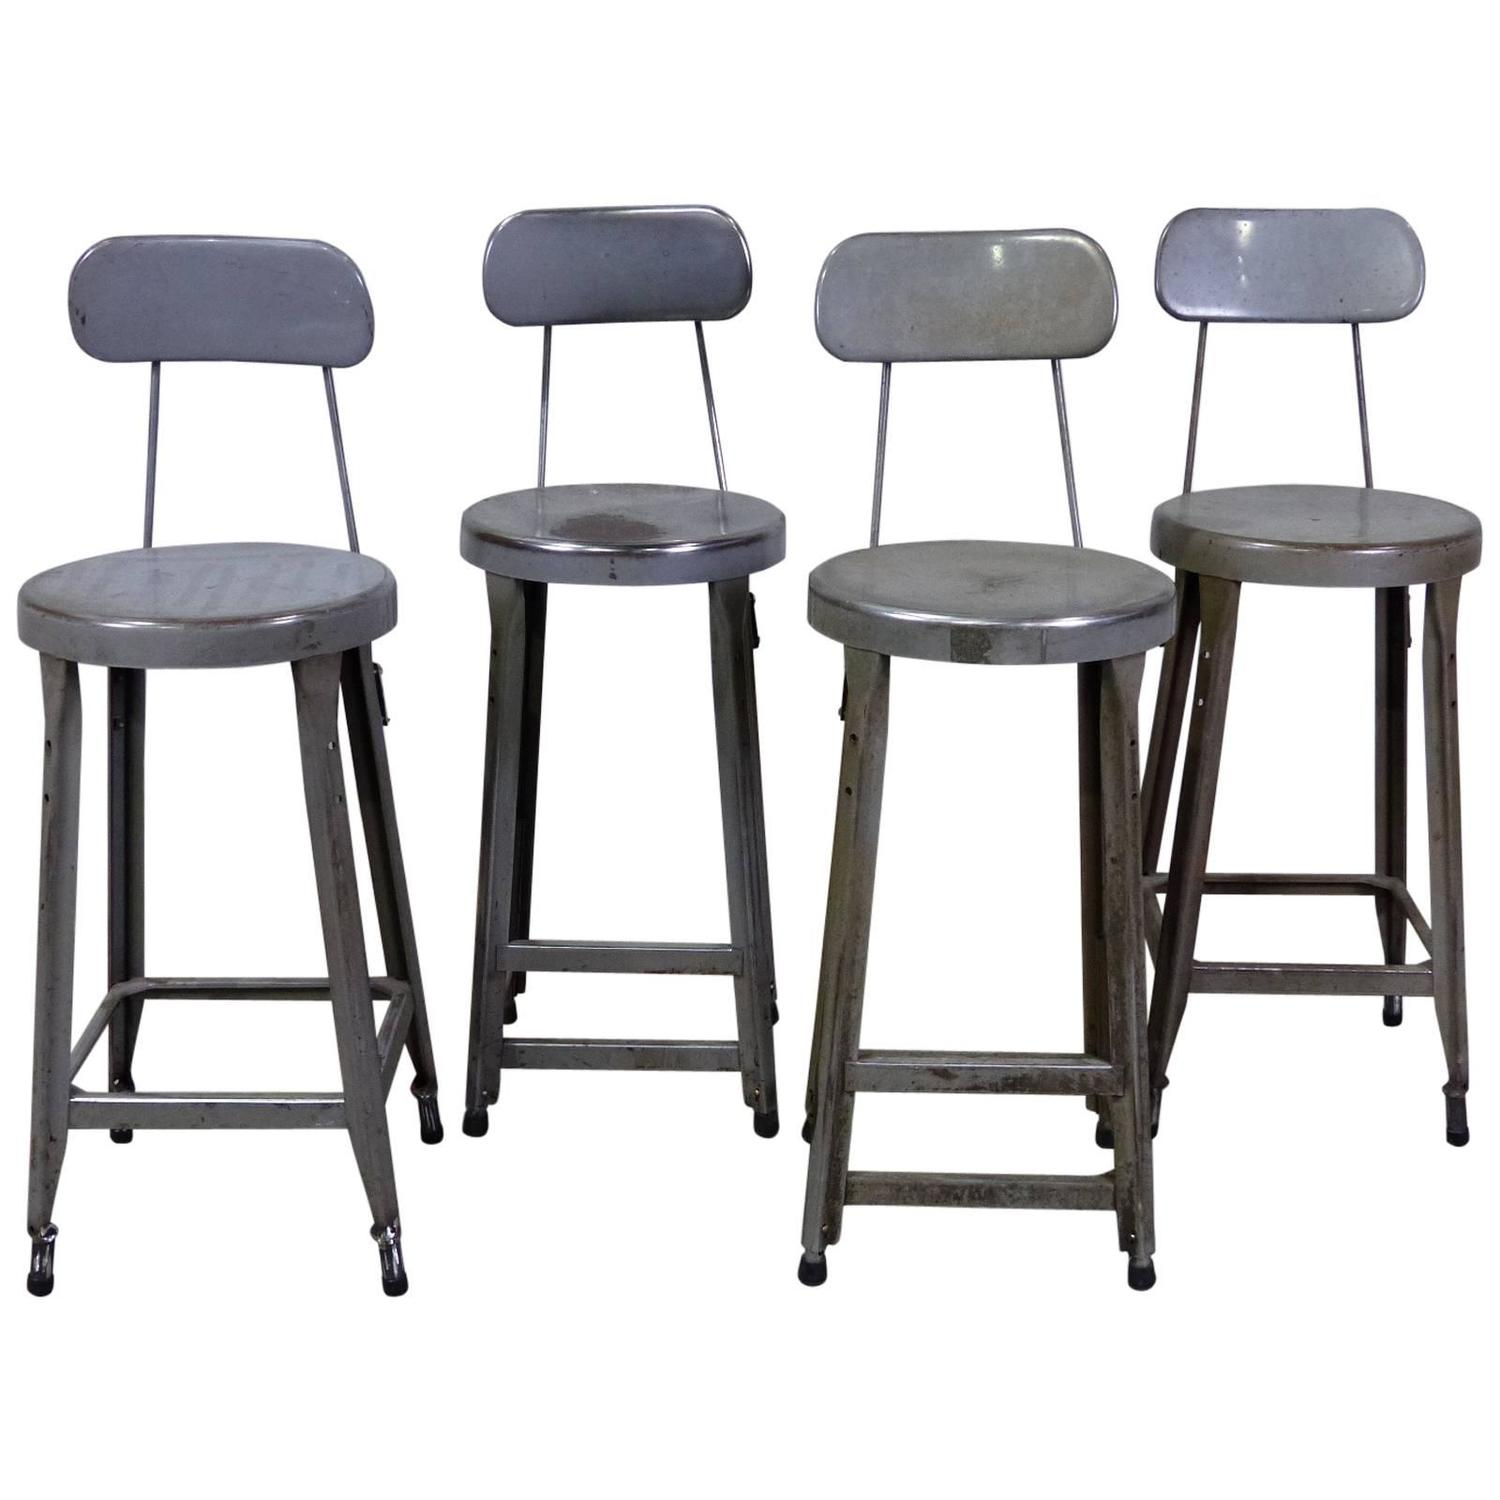 Set of Four Counter Height Industrial Stools at 1stdibs : 3855642z from www.1stdibs.com size 1500 x 1500 jpeg 104kB